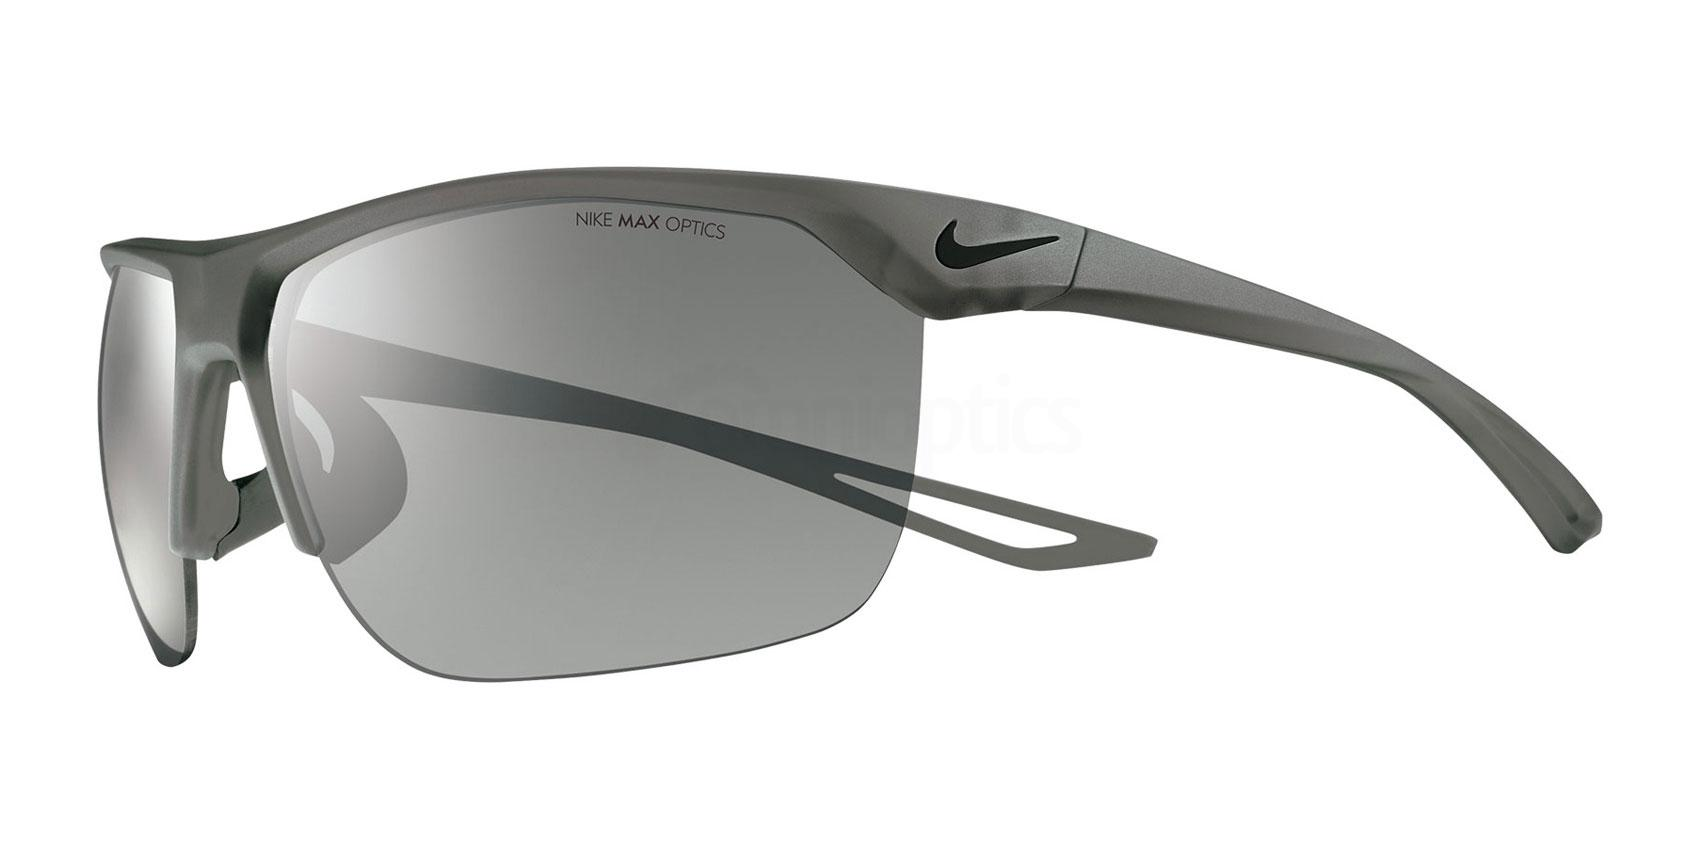 061 TRAINER EV0934 Sunglasses, Nike